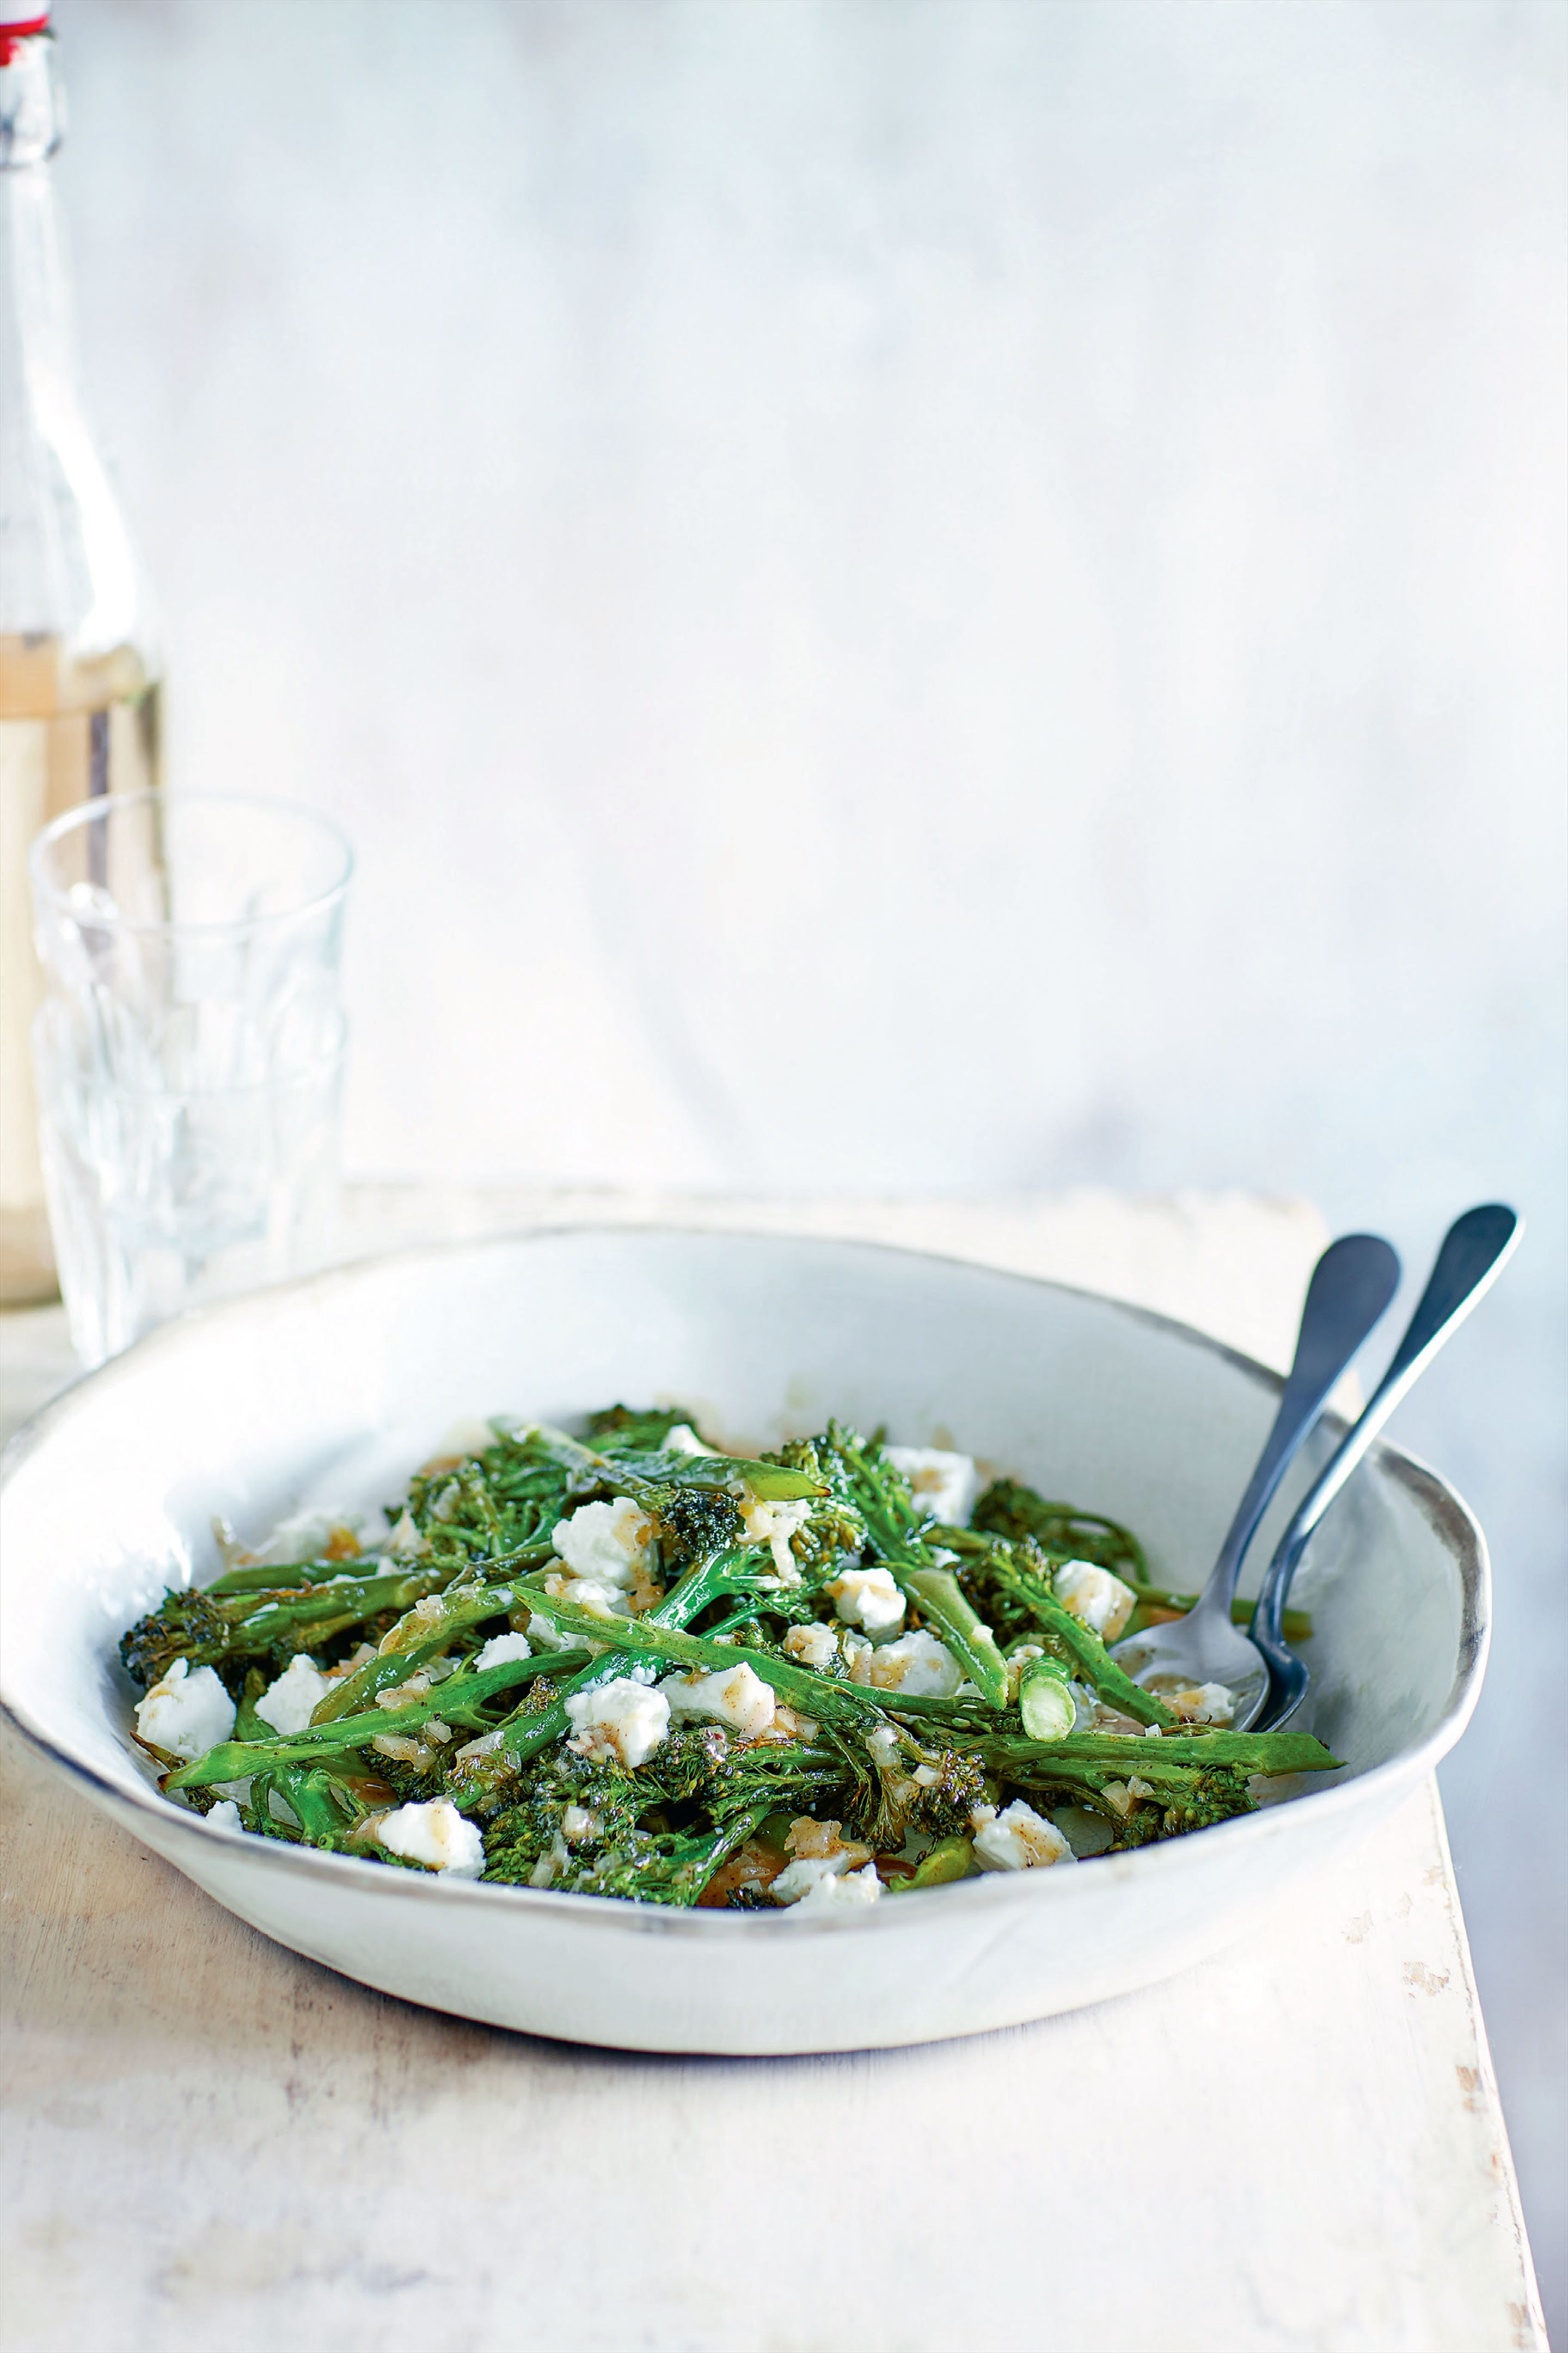 Seared tenderstem broccoli with goat's cheese and walnut salad